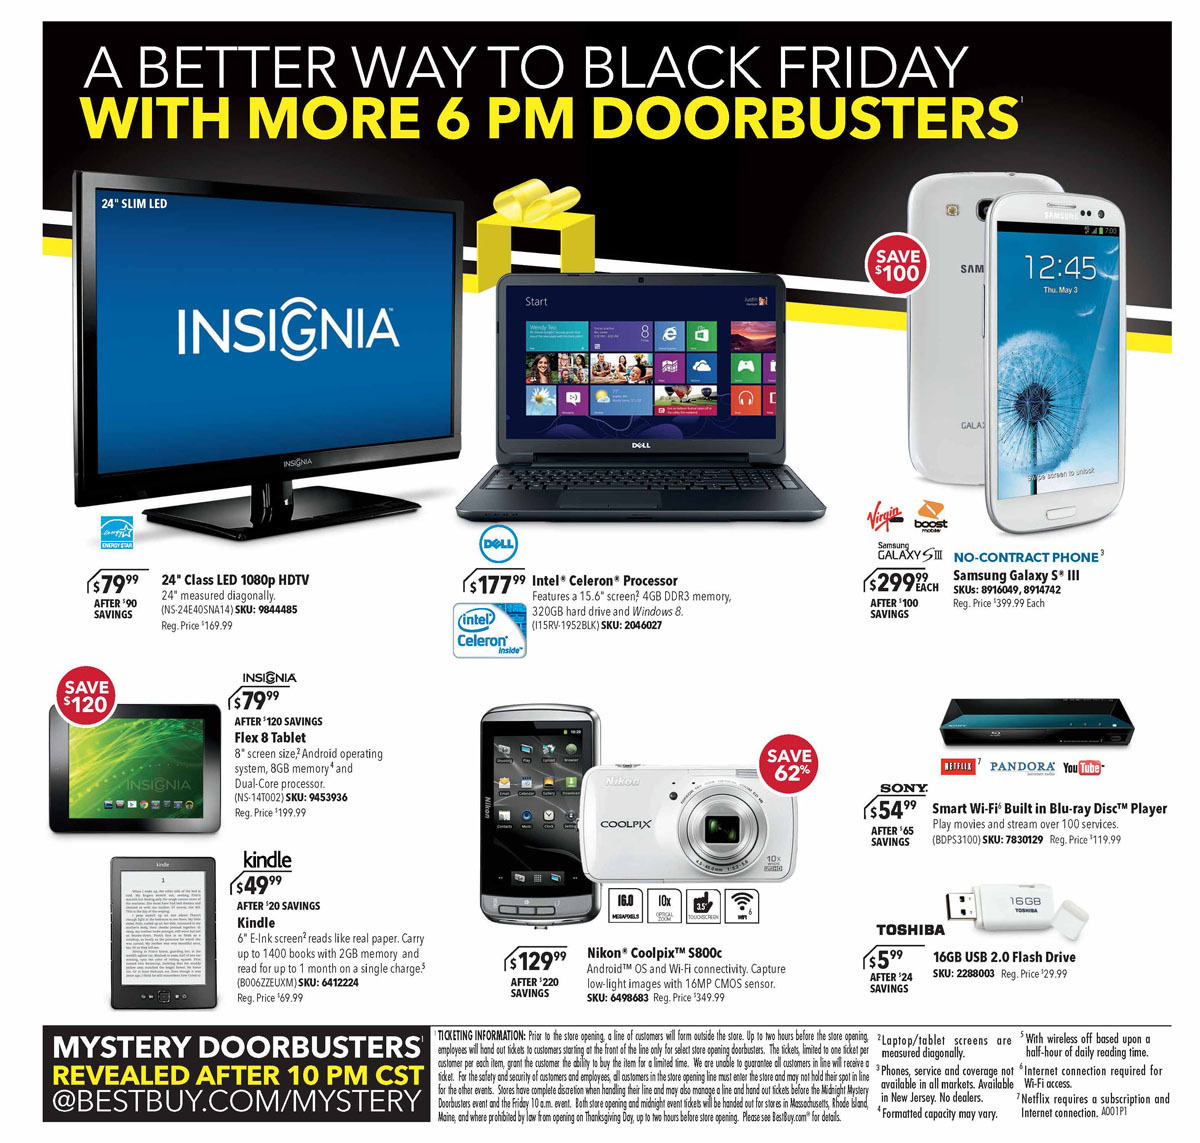 BestBuy_blackfriday2013_2